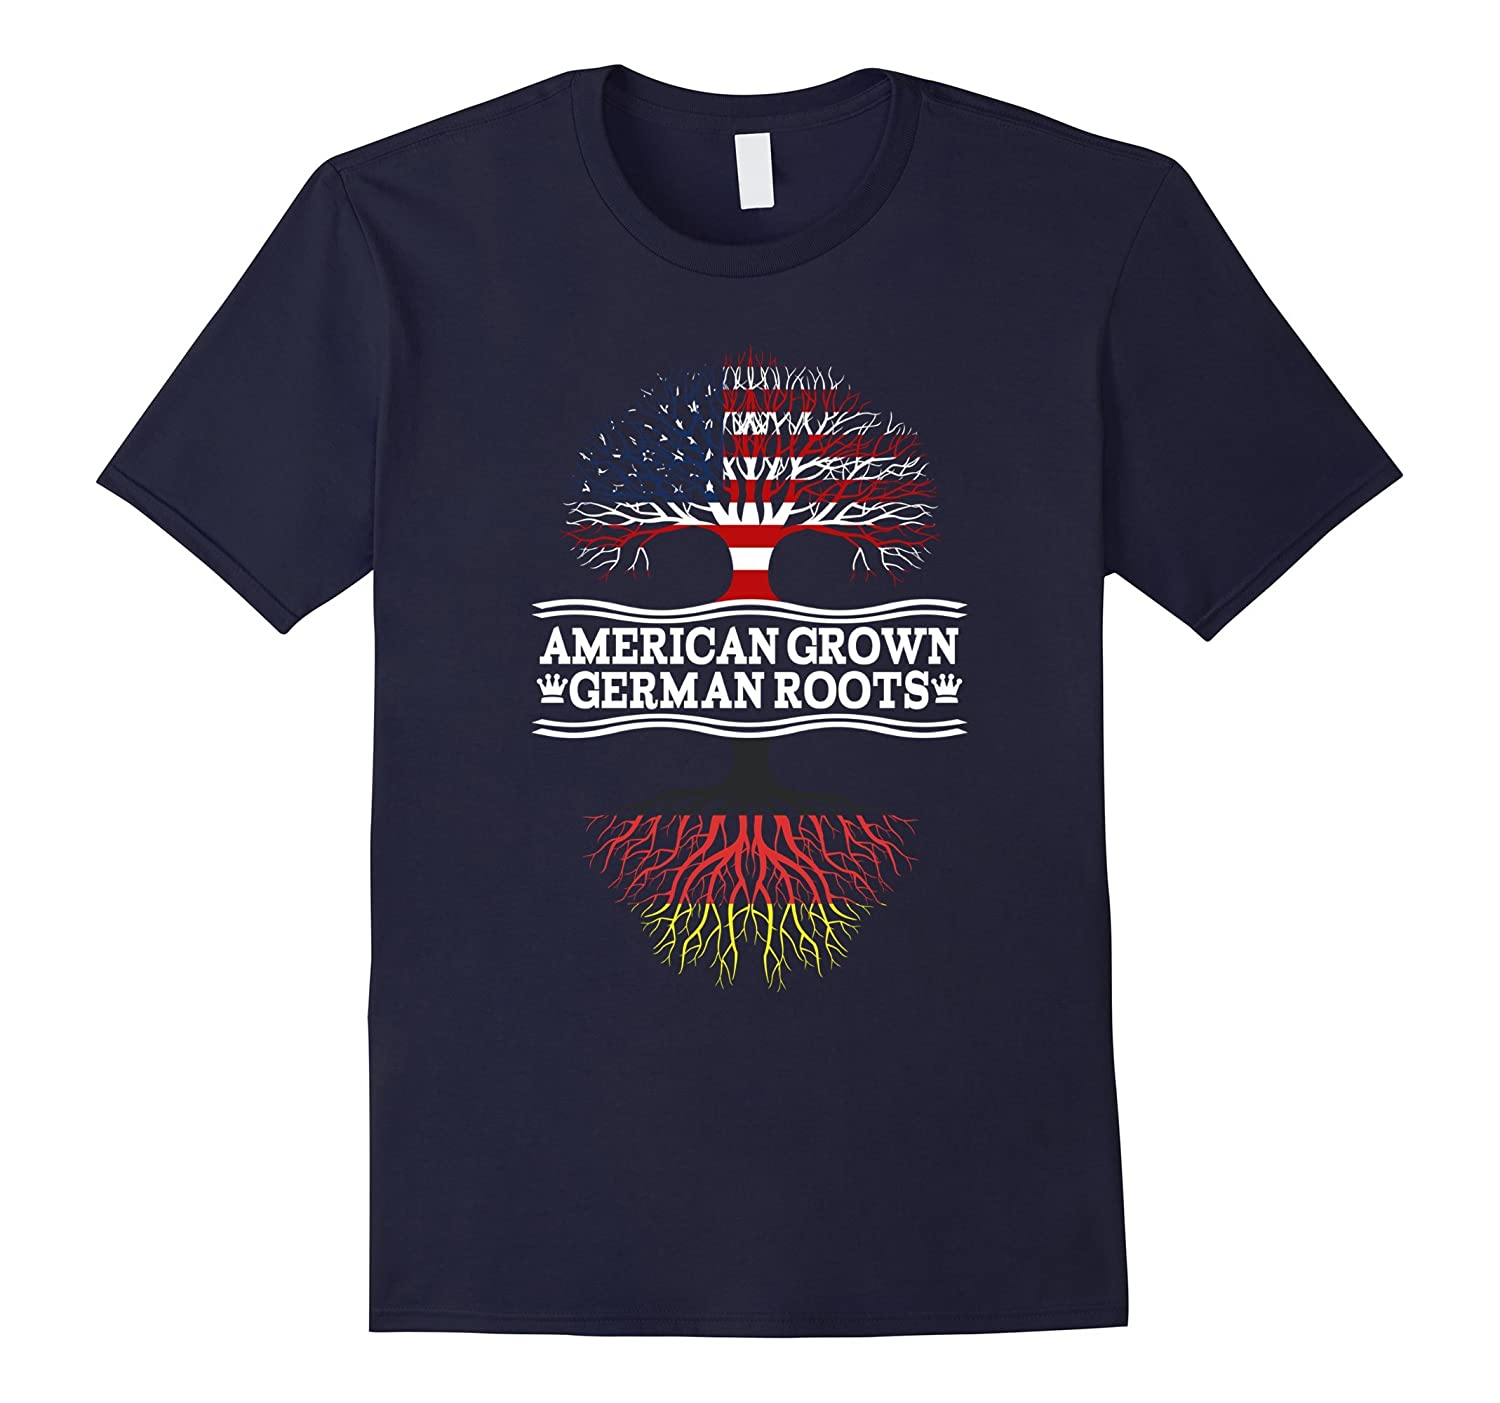 American Grown With German Roots Awesome Shirt Germany-CD